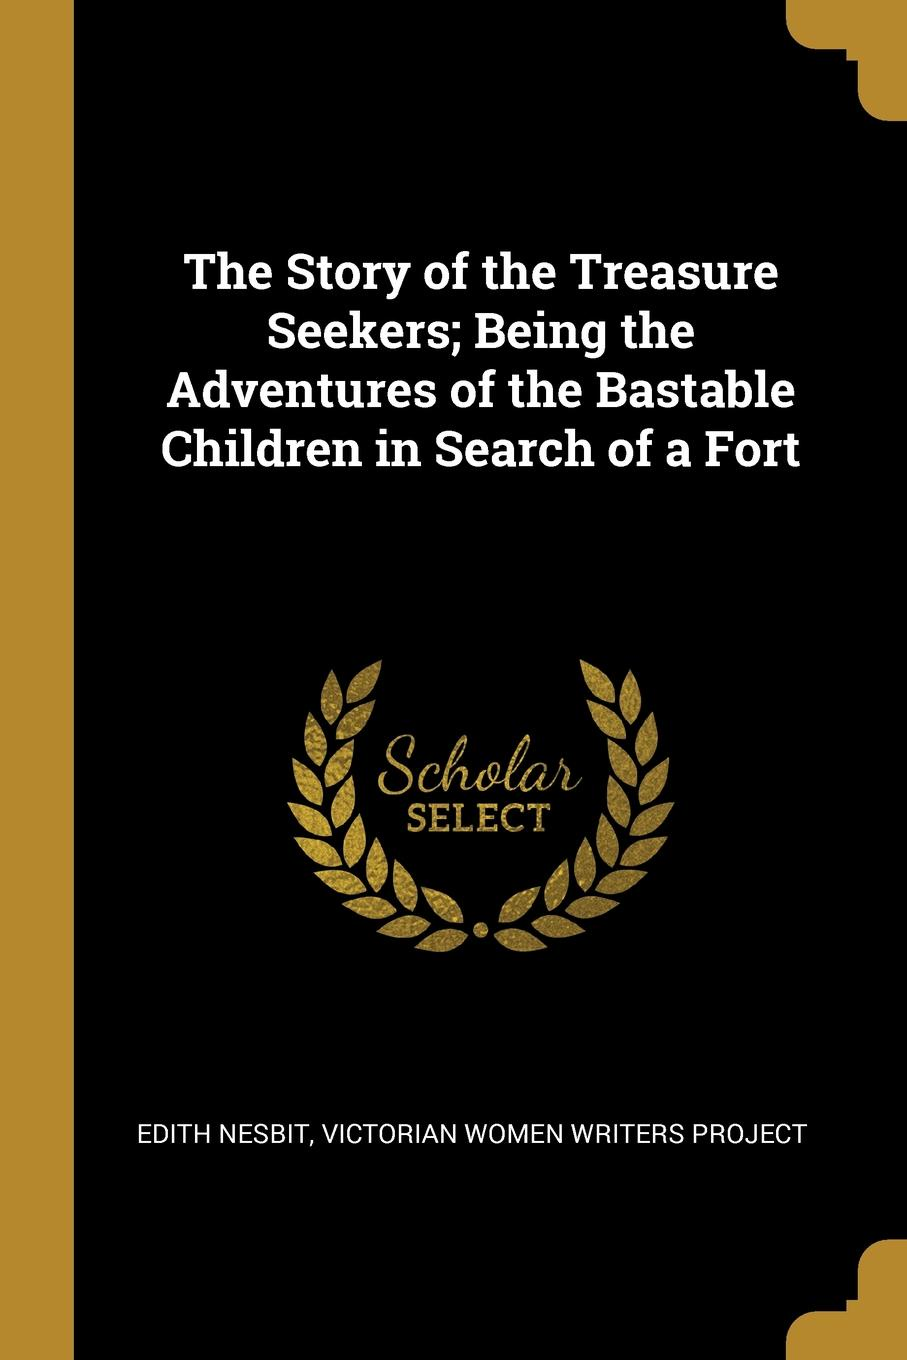 Edith Nesbit The Story of the Treasure Seekers; Being the Adventures of the Bastable Children in Search of a Fort эдит несбит new treasure seekers or the bastable children in search of a fortune